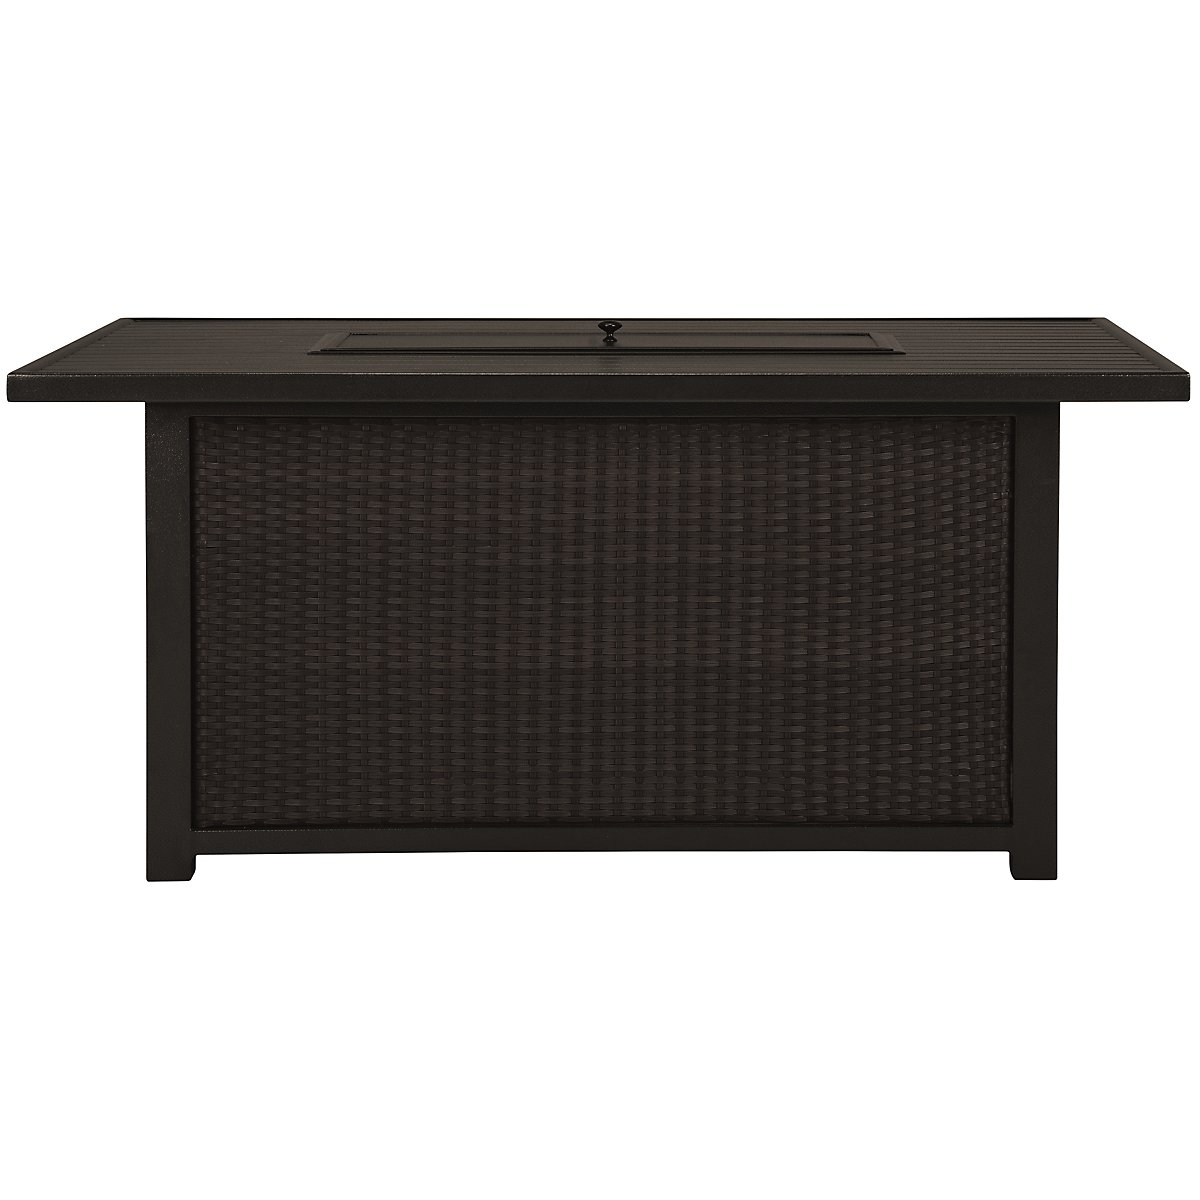 Fina Dark Tone Rectangular Fire Pit